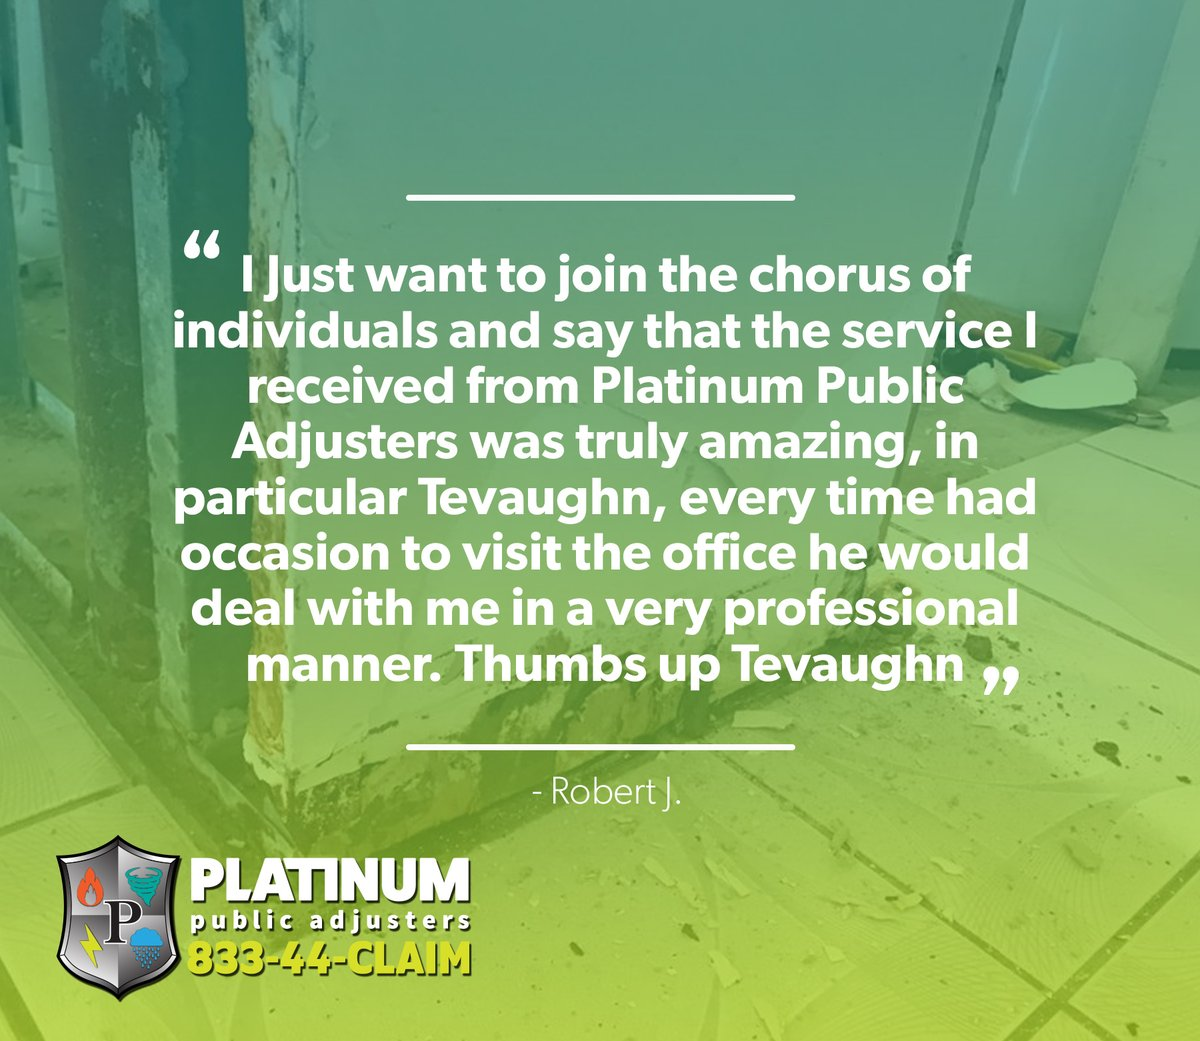 Thank you so much, Robert! http://www.ppaservices.com   PPAdjusters #Thursday #InsuranceClaims #PublicAdjusters #MiamiDade #PalmBeach #testimonials #reviewspic.twitter.com/h9HpI1FwuY